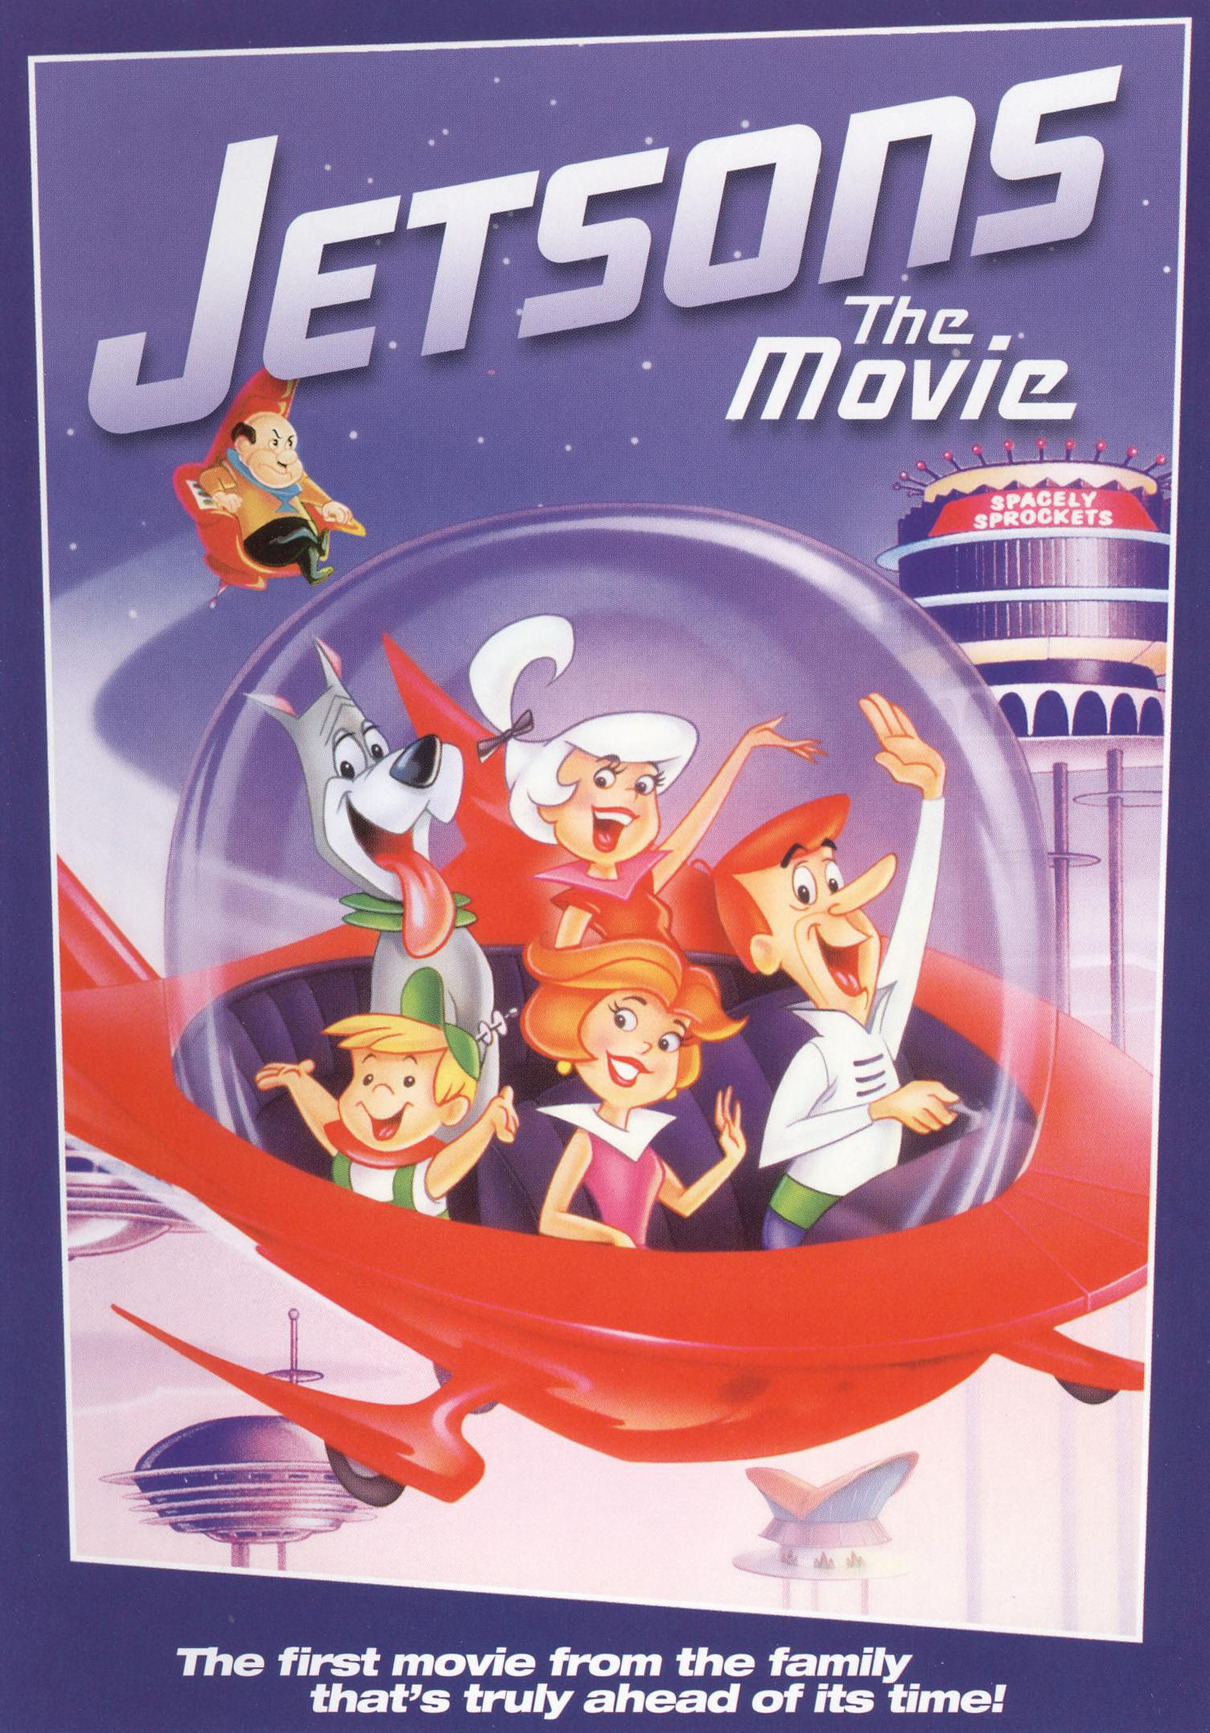 JETSON'S MOVIE SHOWING JULY 26TH @ 4PM